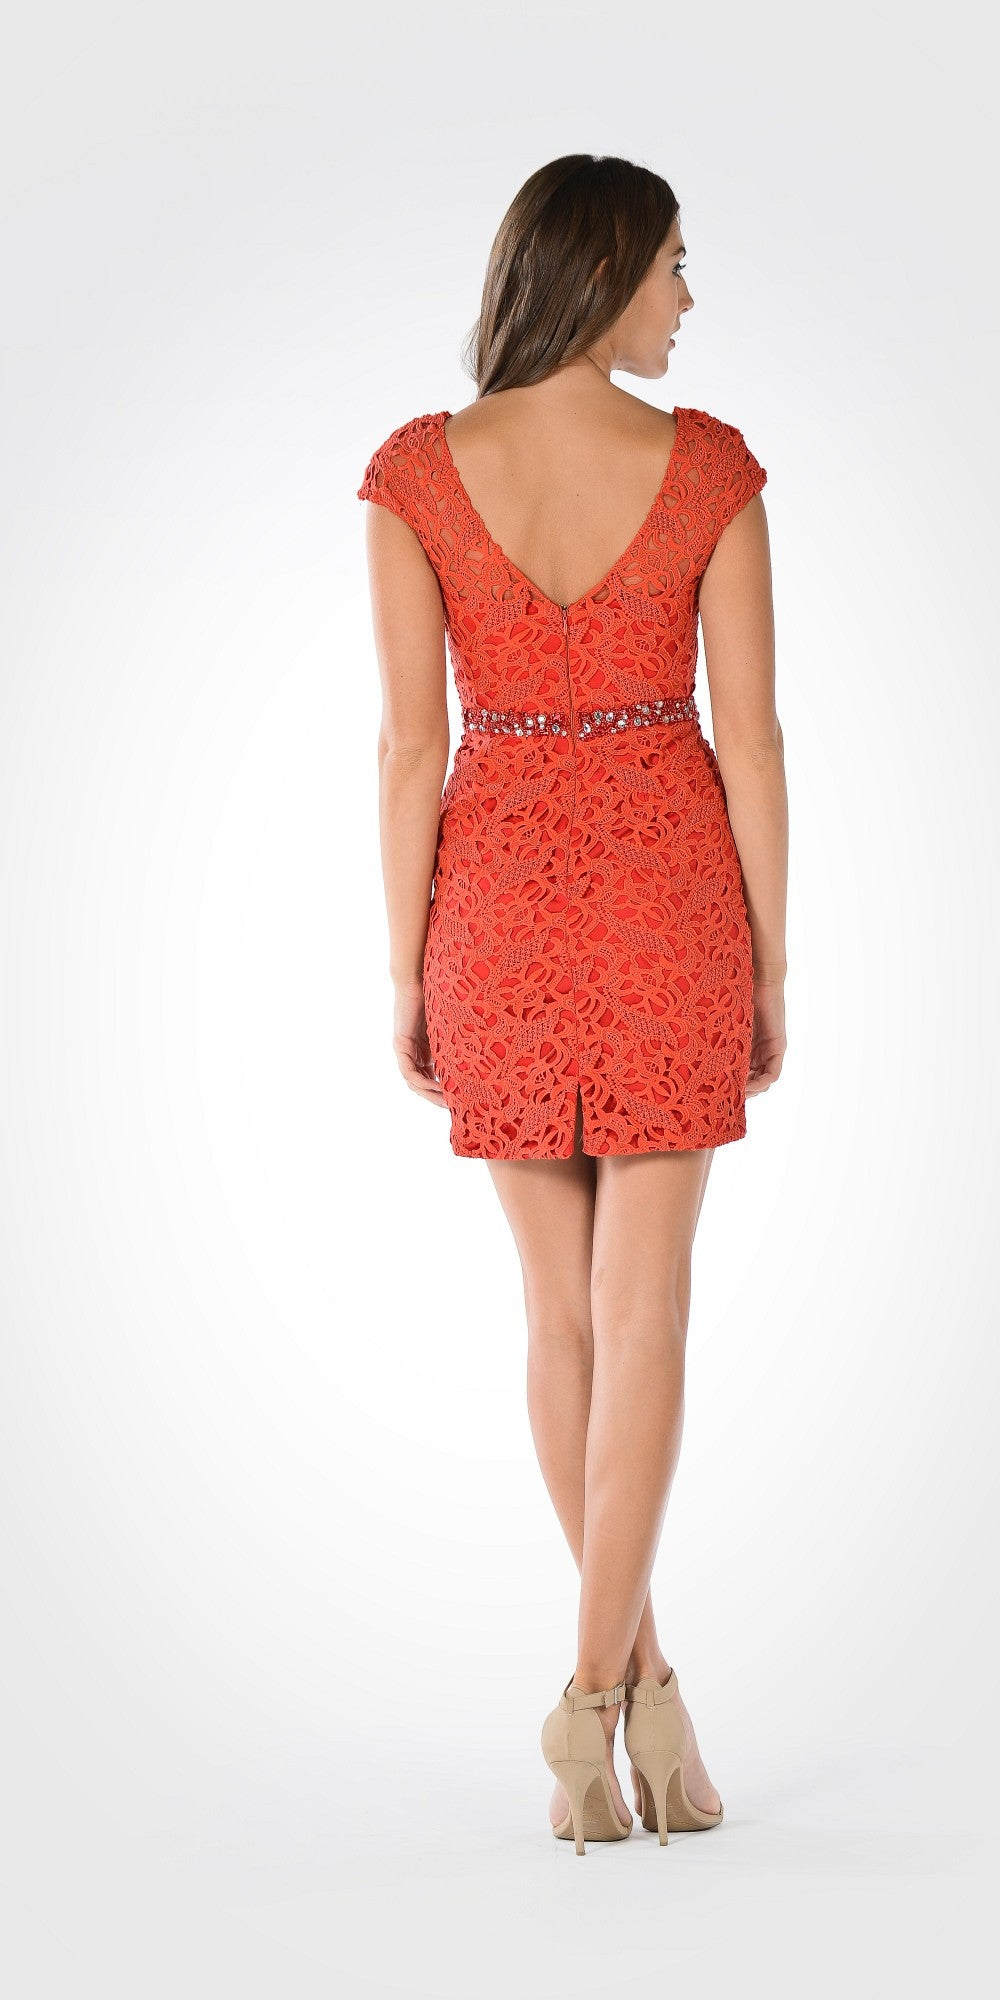 Lace Bodycon Cap Sleeves Embellished Waist Cocktail Dress Red